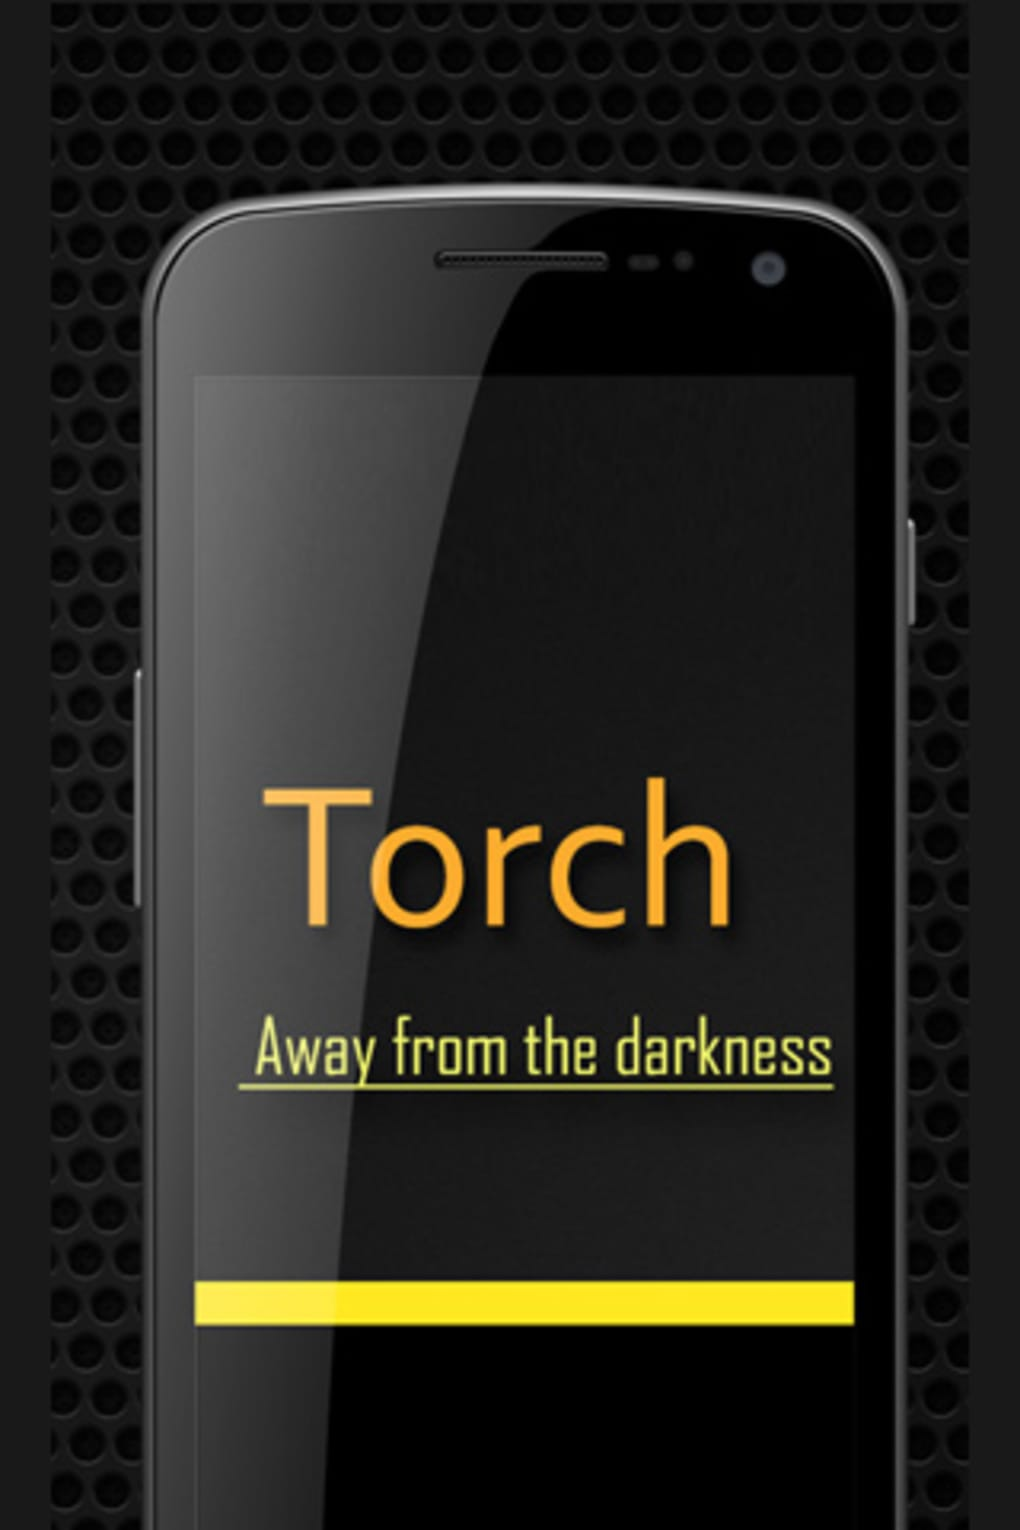 Torch for Android - Download